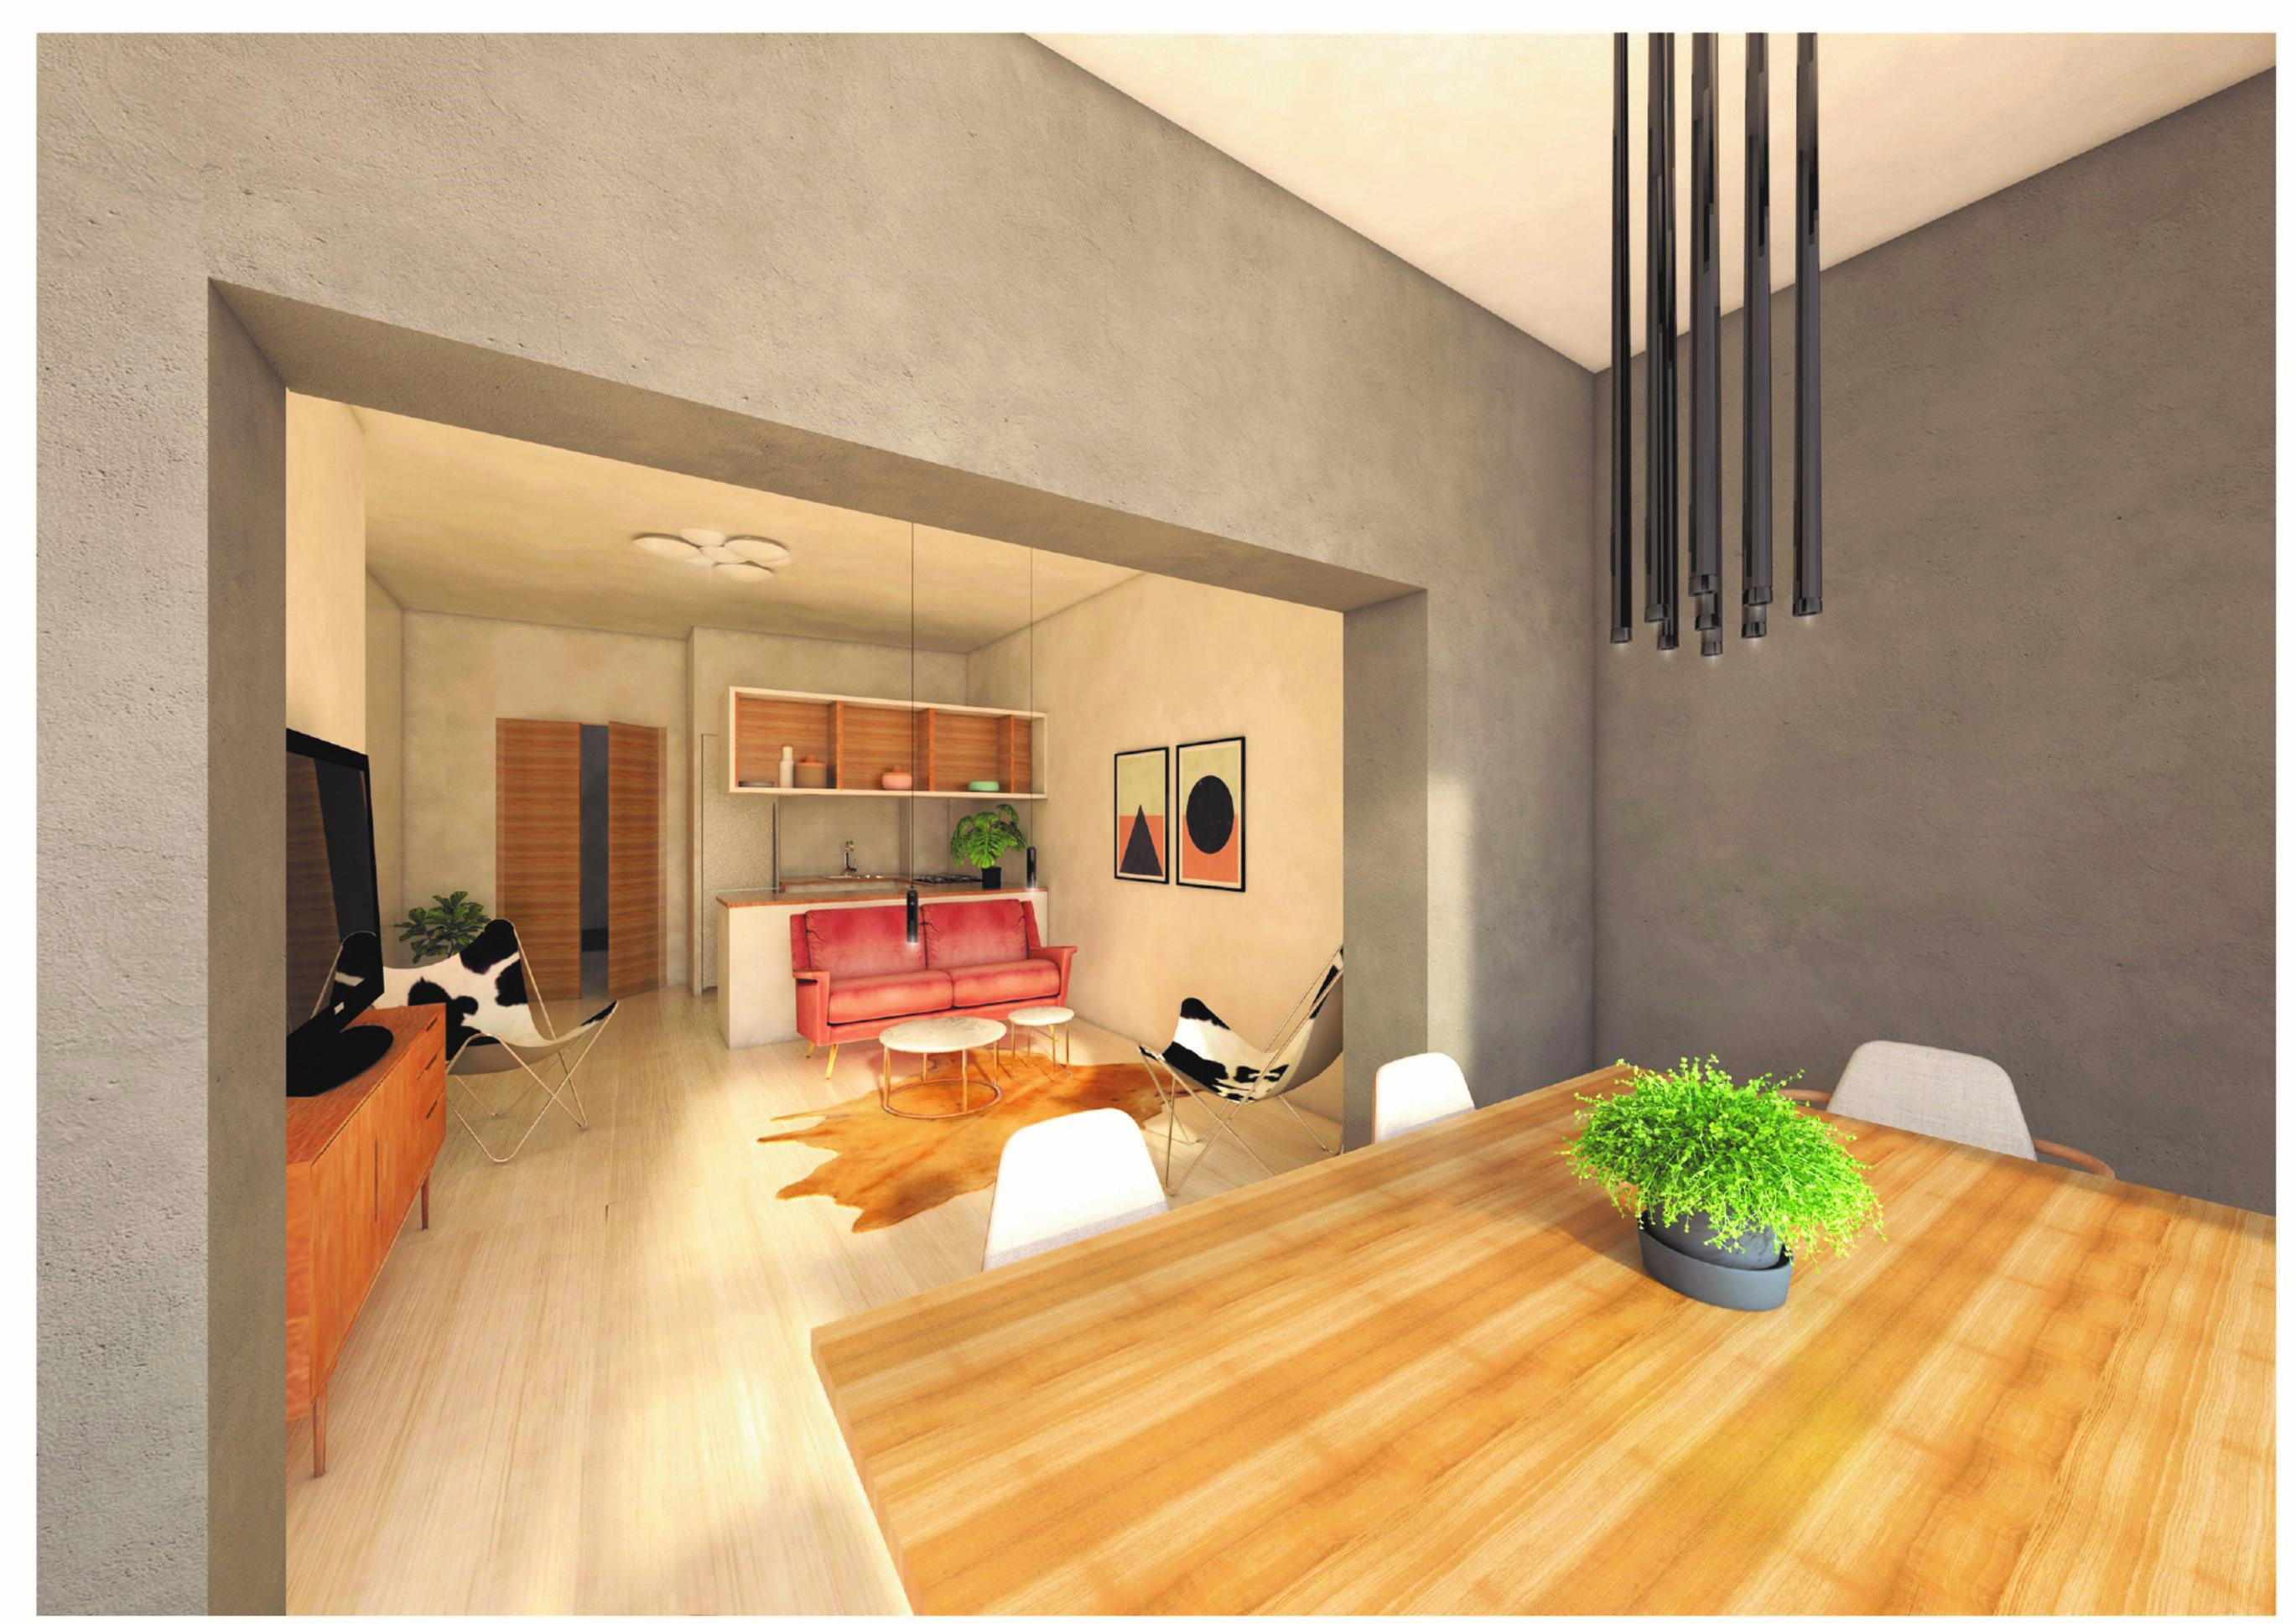 220650 Ground floor for sale in Sarrià-Sant Gervasi, Sant Gervasi-Galvany 29